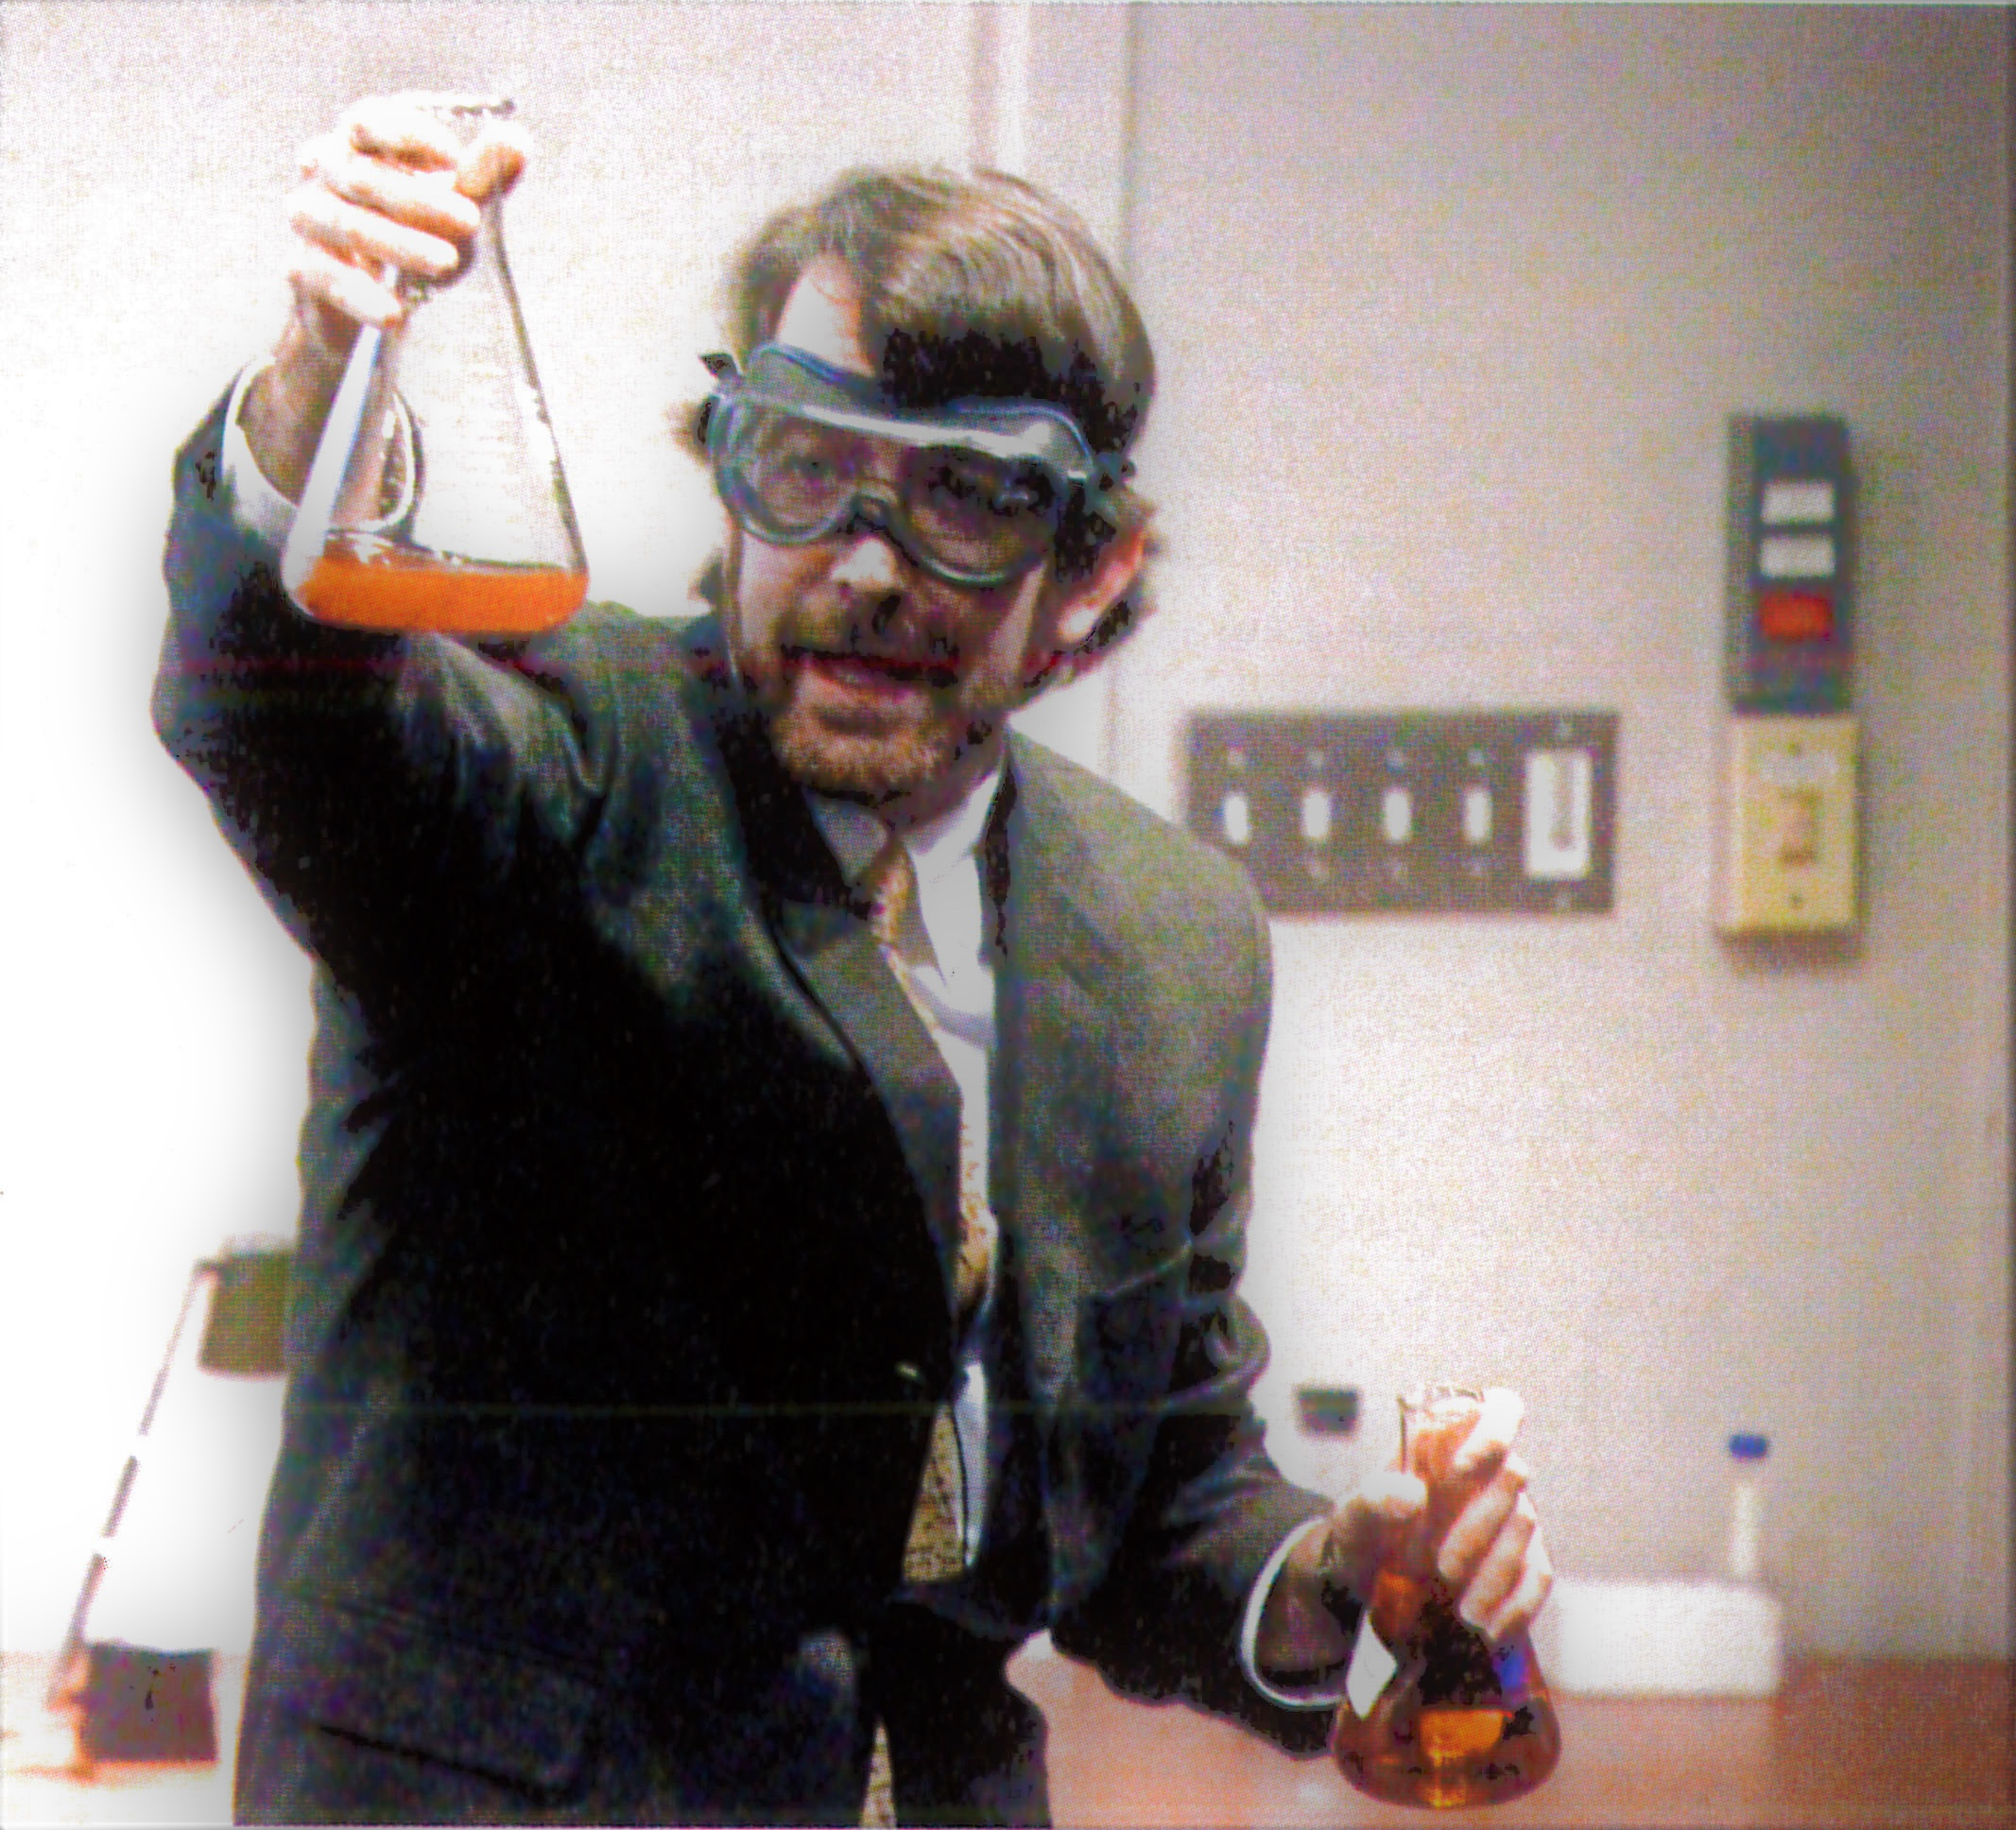 Professor McFarland mixing up a special solution in the lab